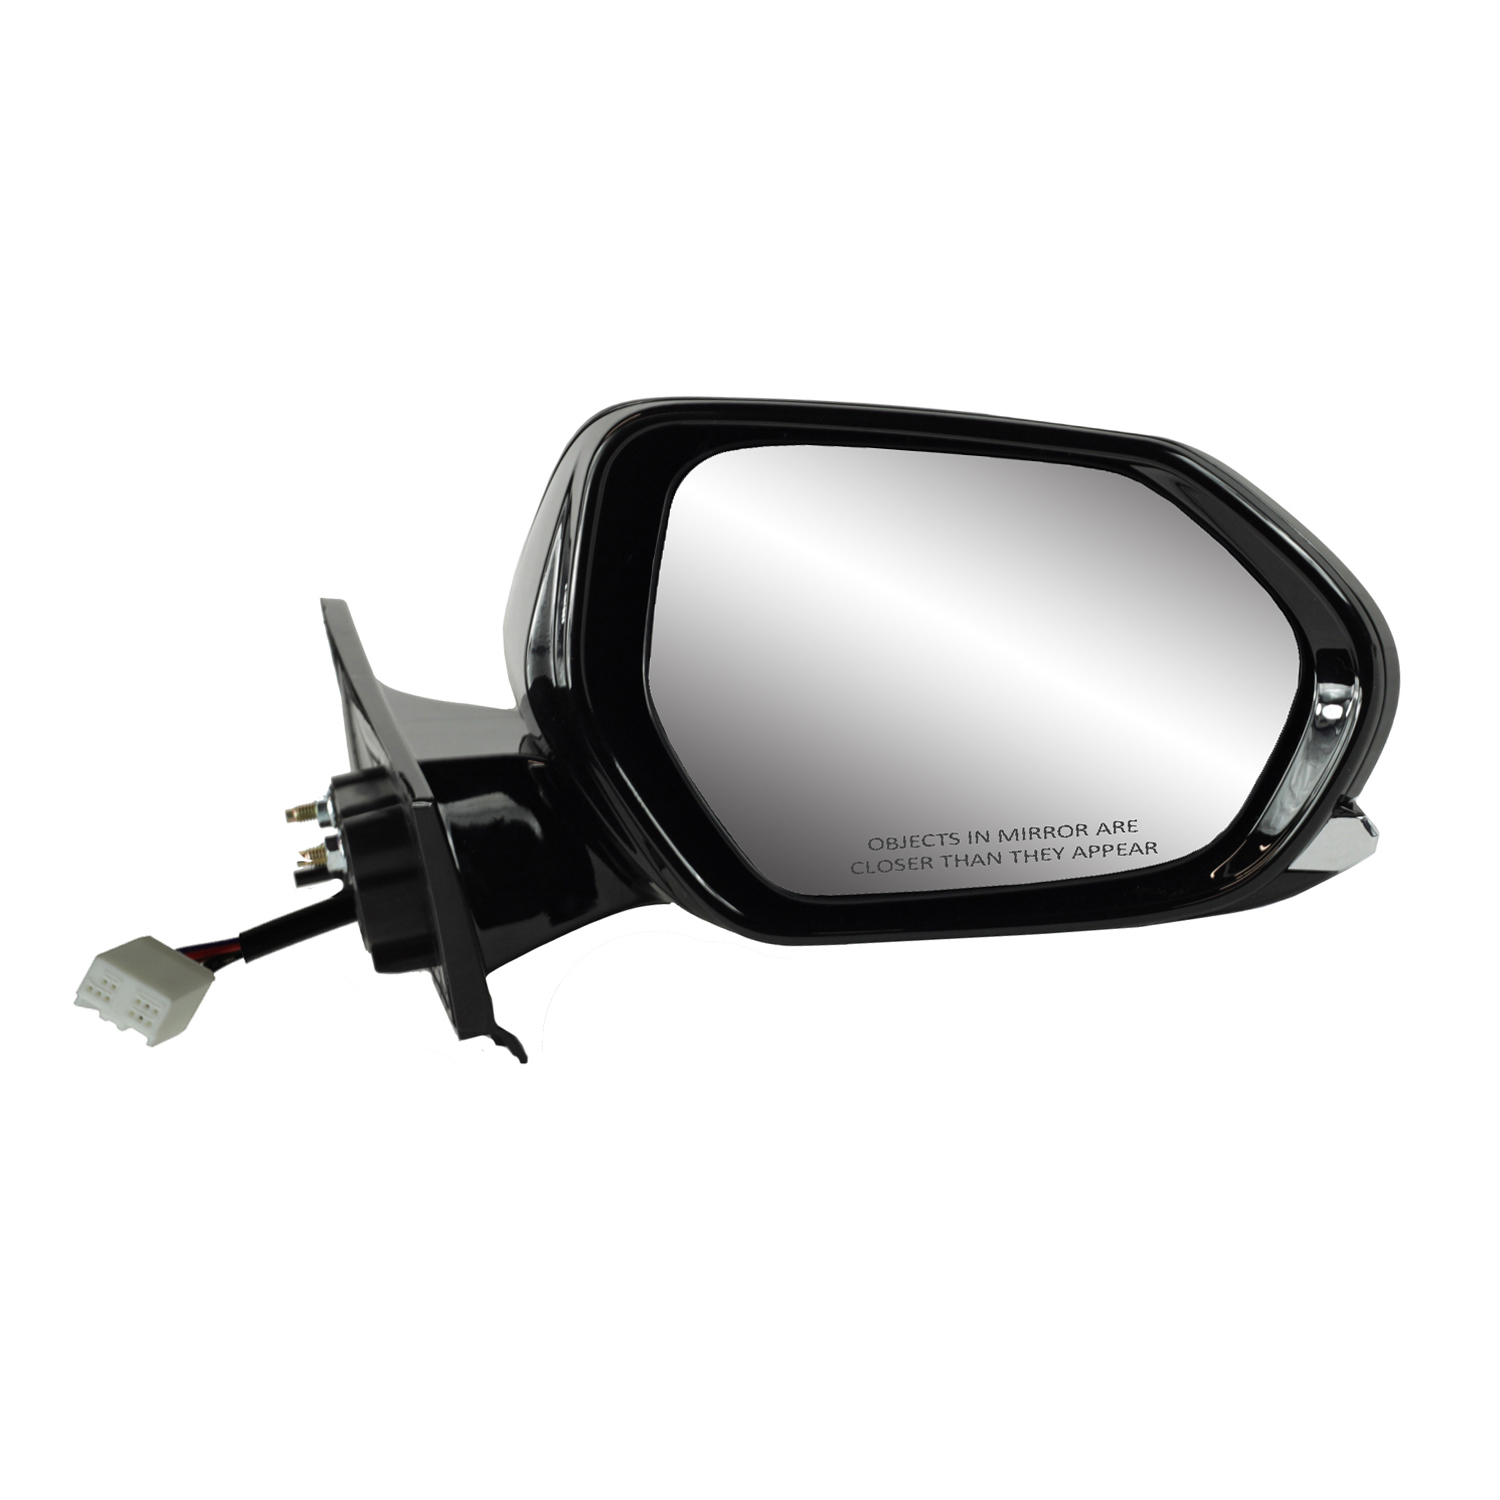 Fit System Driver Side Mirror for Toyota Highlander Blind spot Detection System Heated Power 70188T w//o Around View Monitor w//Turn Signal Foldaway Textured Black w//PTM Cover w//o Memory